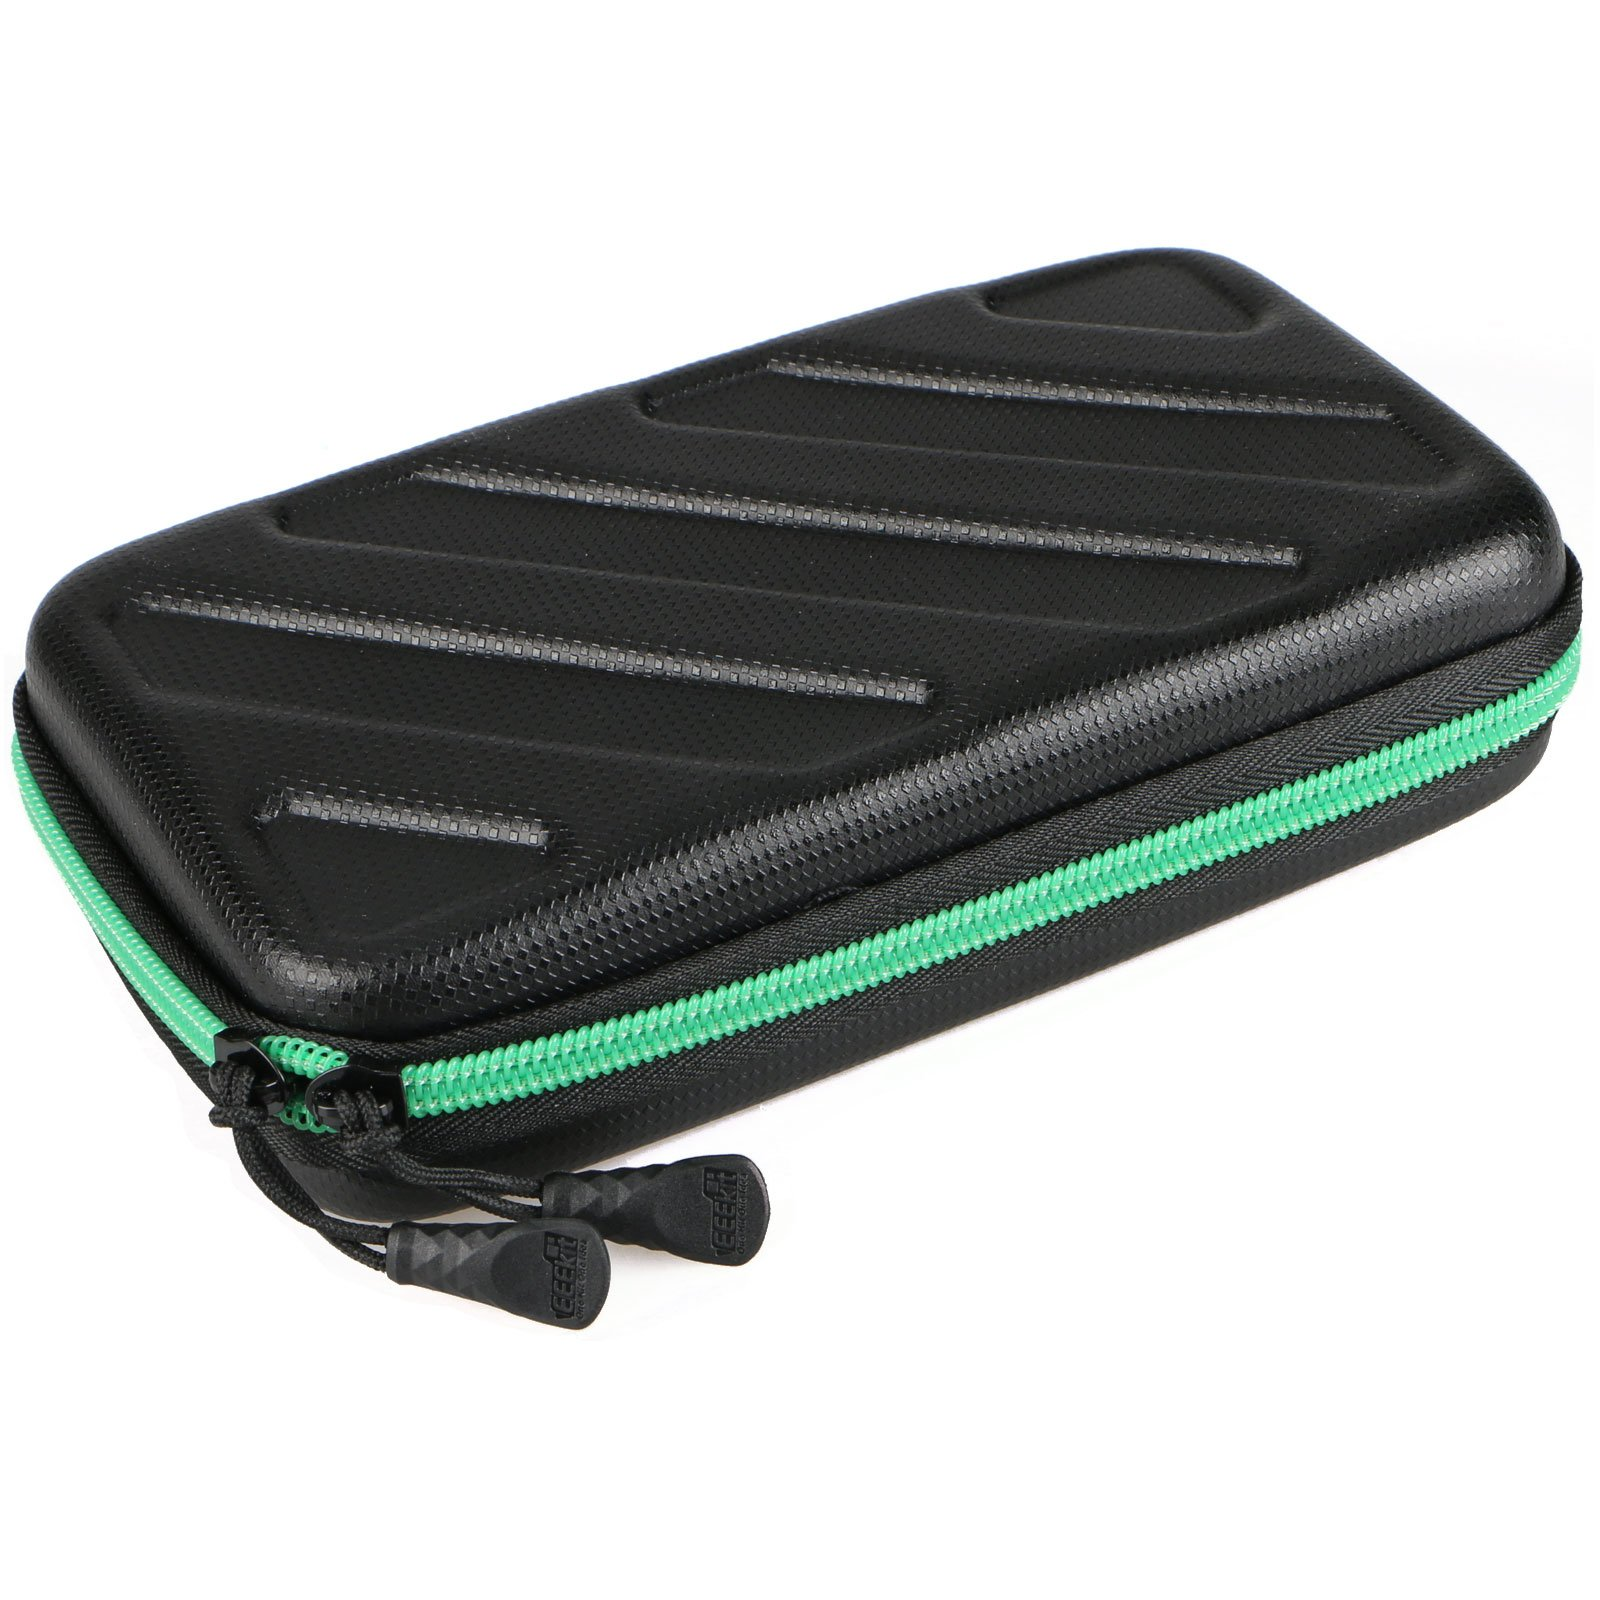 EEEKit Portable Travel Cable Organizer Electronics Accessories Cases Digital Bag for Hard Drives, Charging Cords, USB Charger Adapter, USB Flash Drives, Data Cable (7.3 in x 4.5 in x 1.6 in) by EEEKit (Image #4)